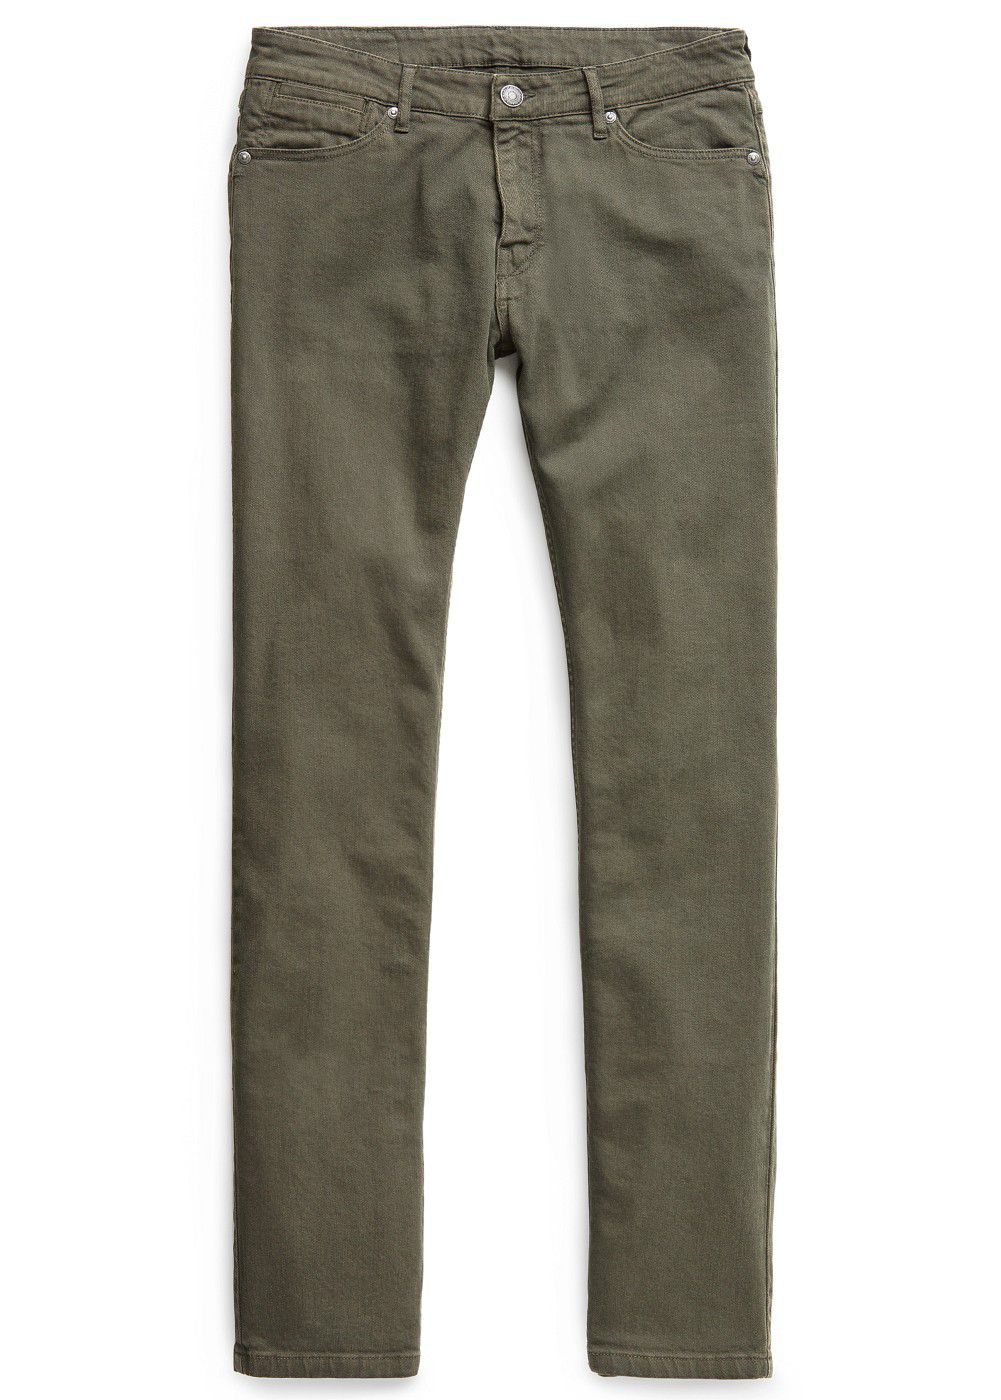 Slim-fit khaki alex jeans